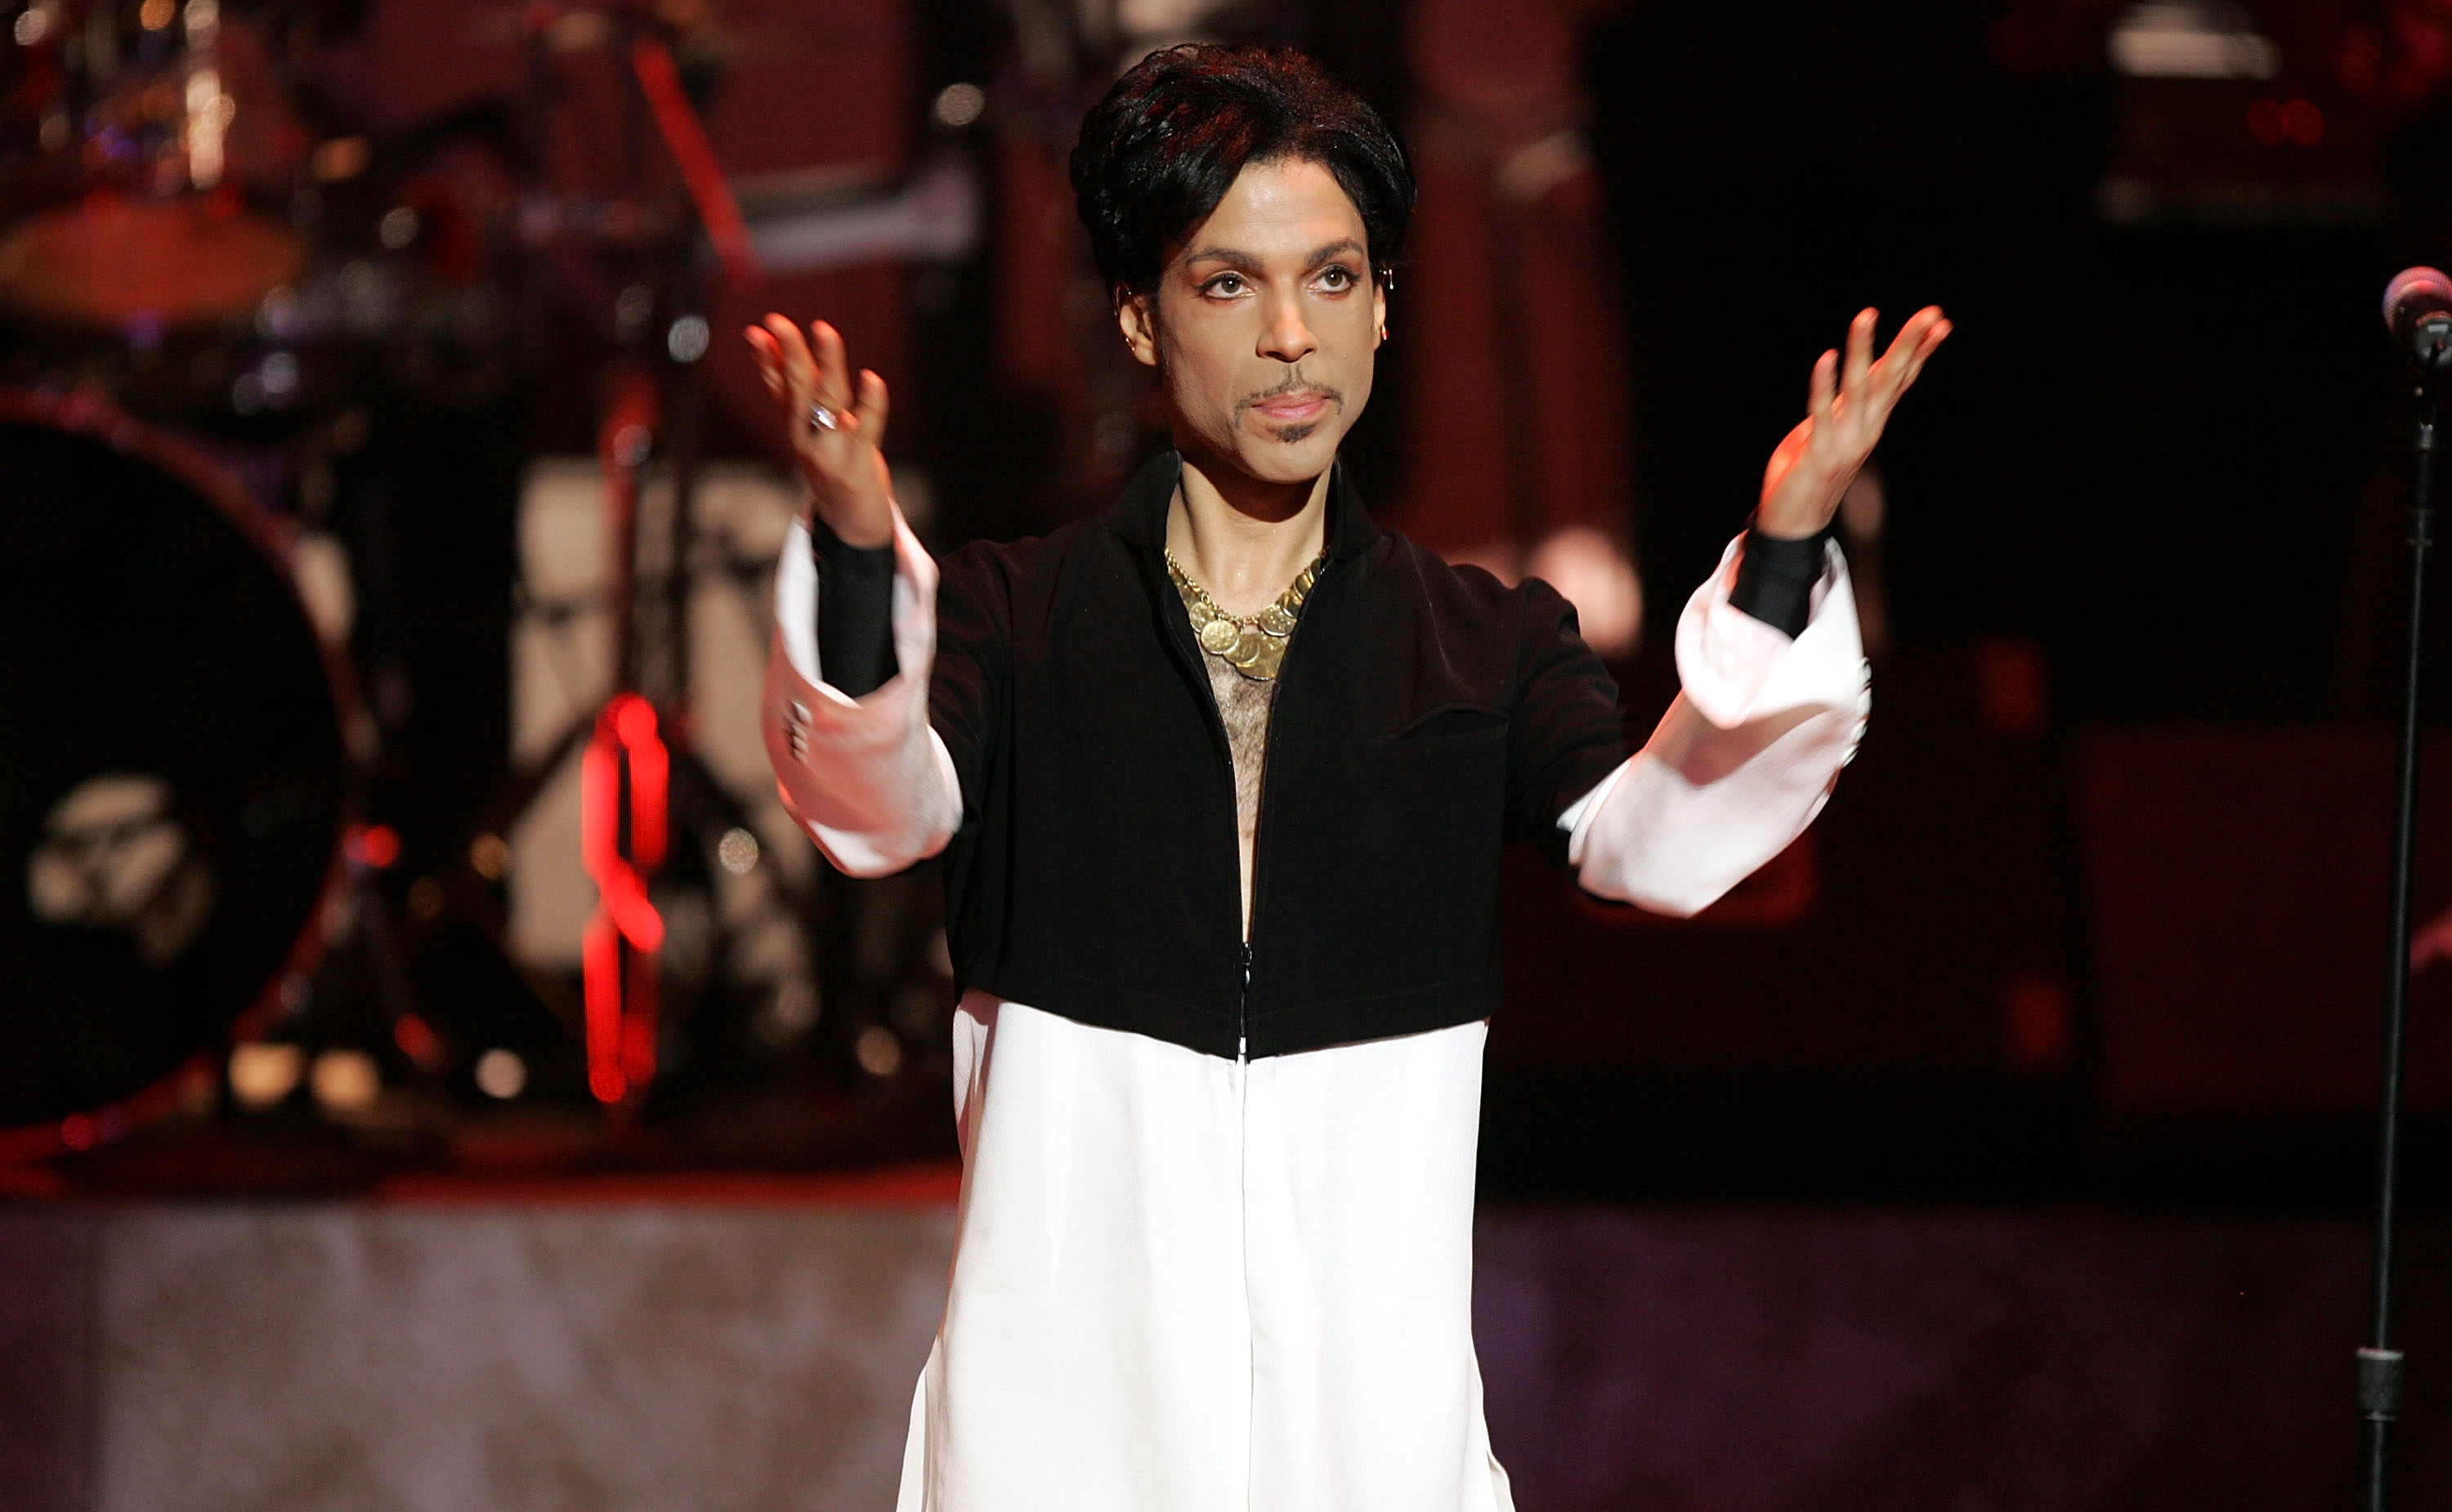 The estate of late singer Prince has filed a federal lawsuit against Jay-Z's entertainment company Roc Nation.